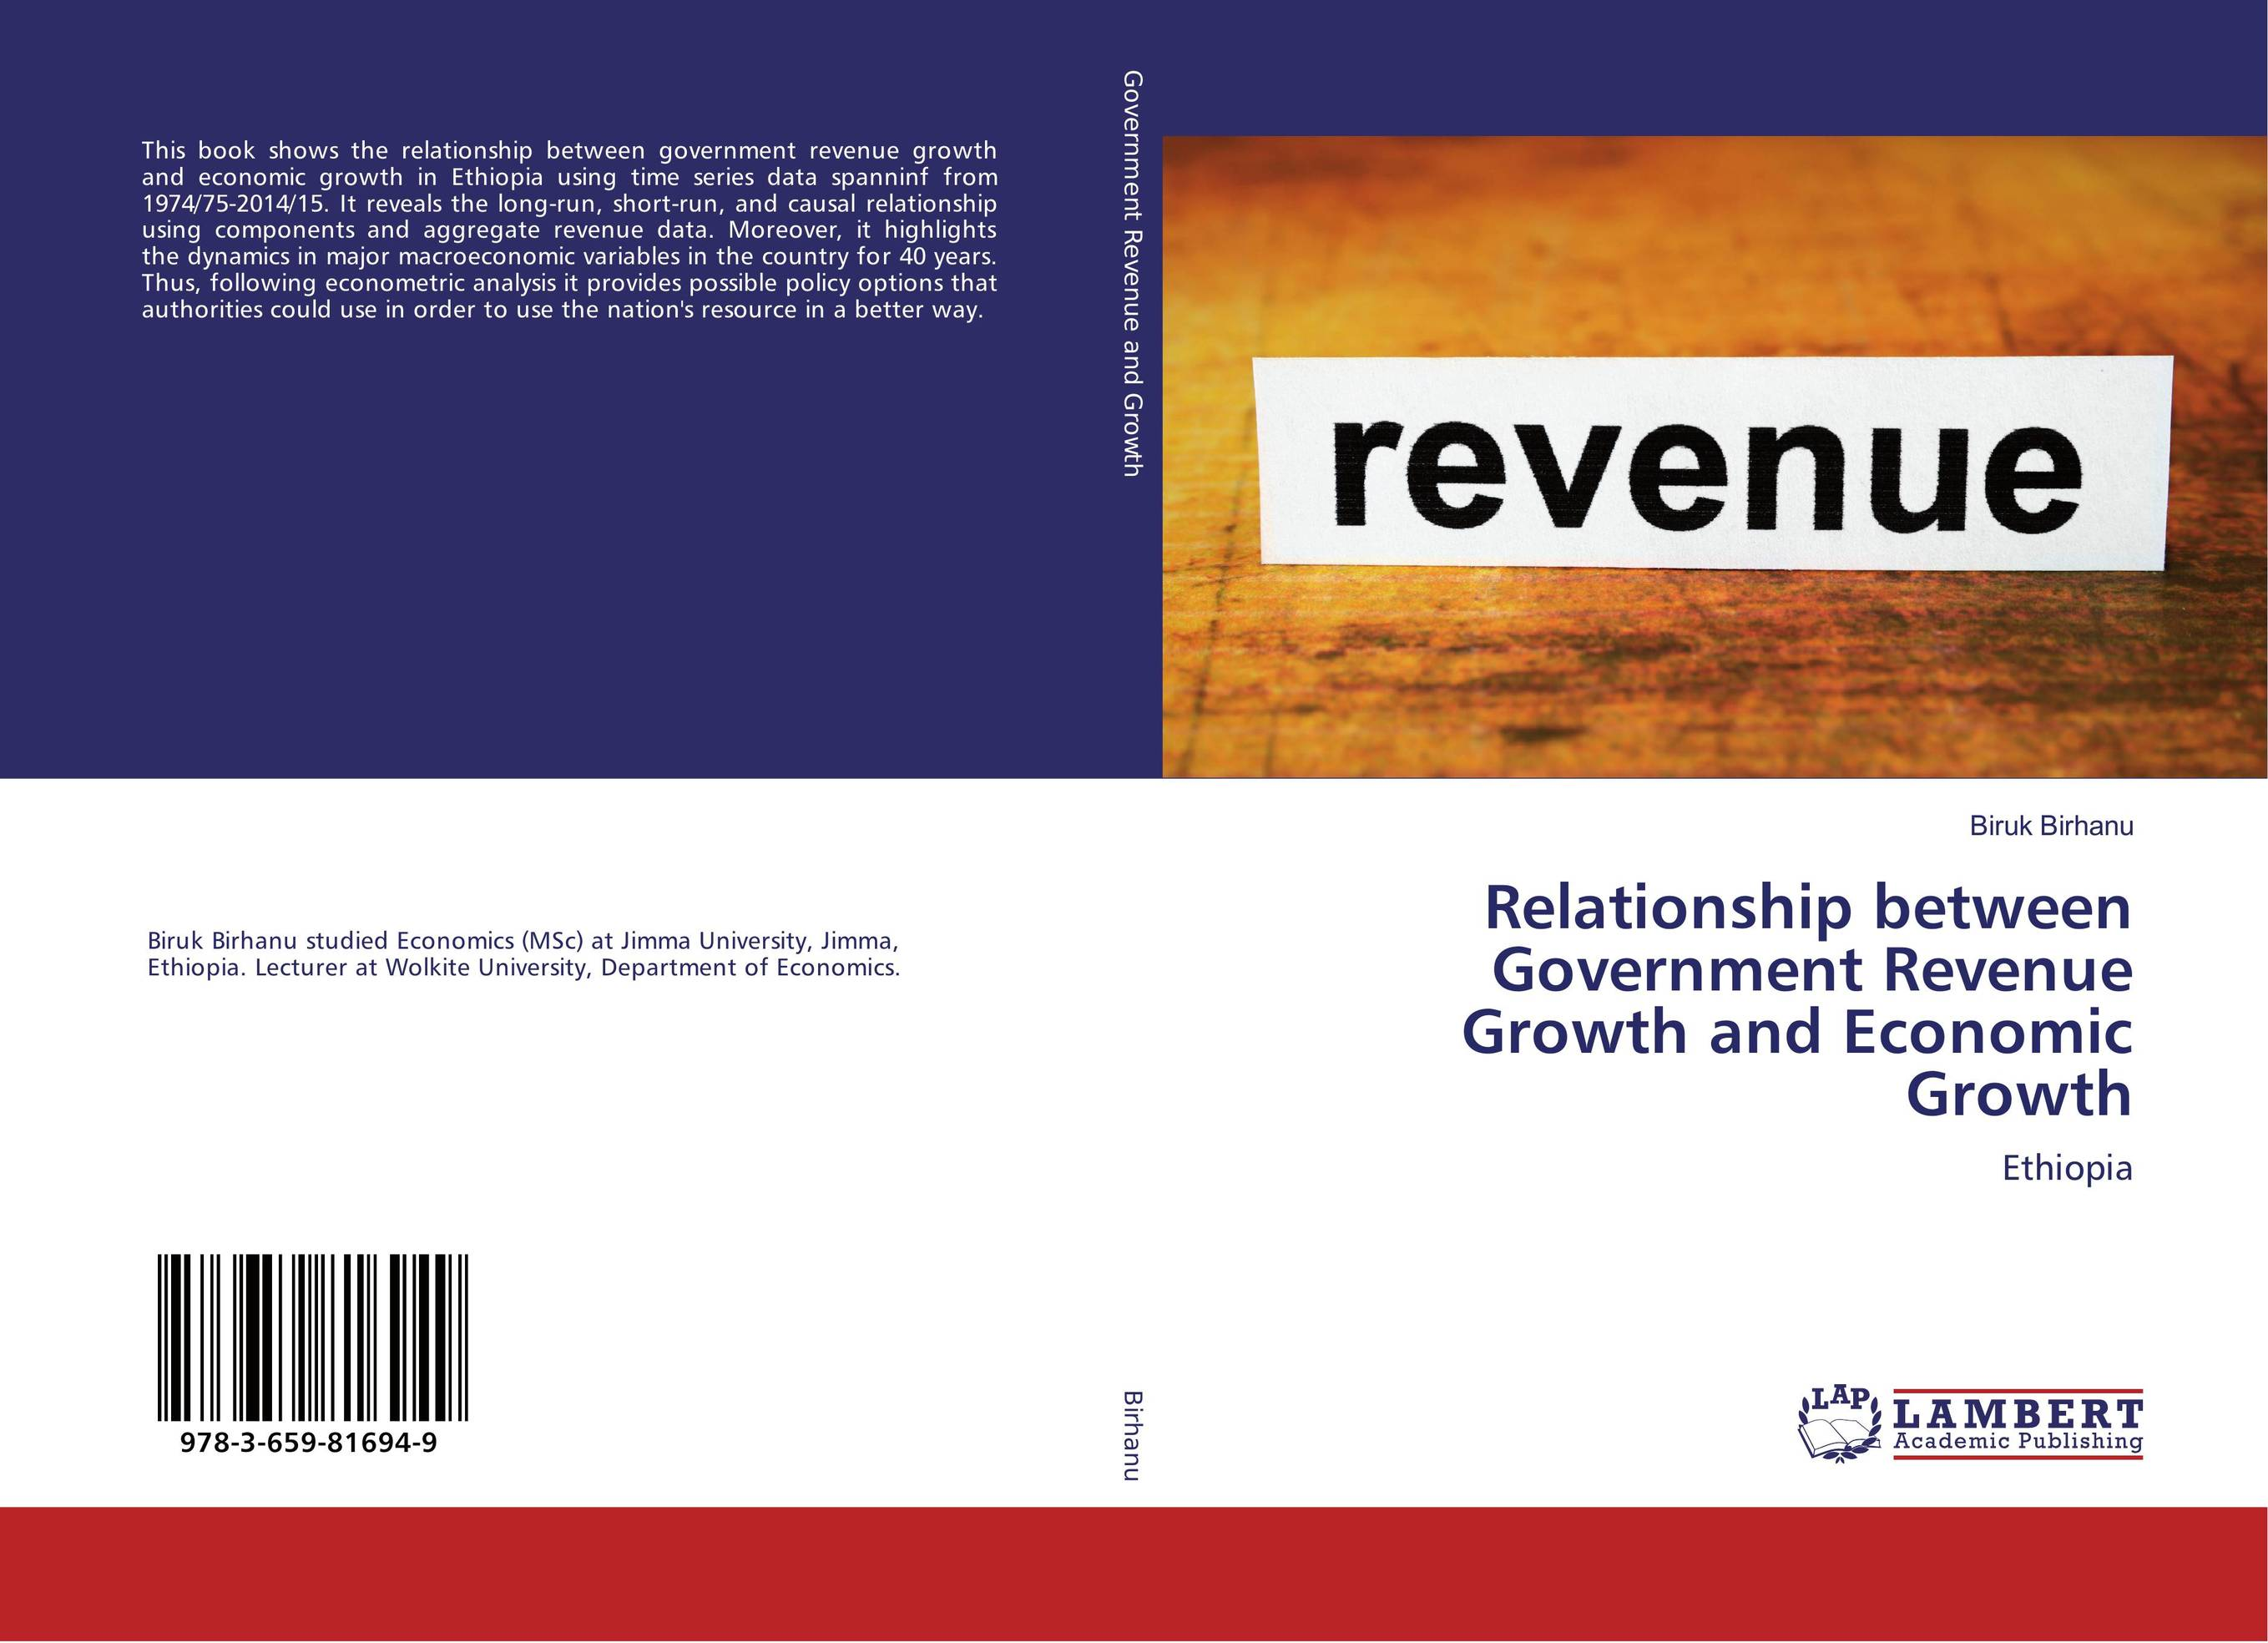 Фото Relationship between Government Revenue Growth and Economic Growth cervical cancer in amhara region in ethiopia